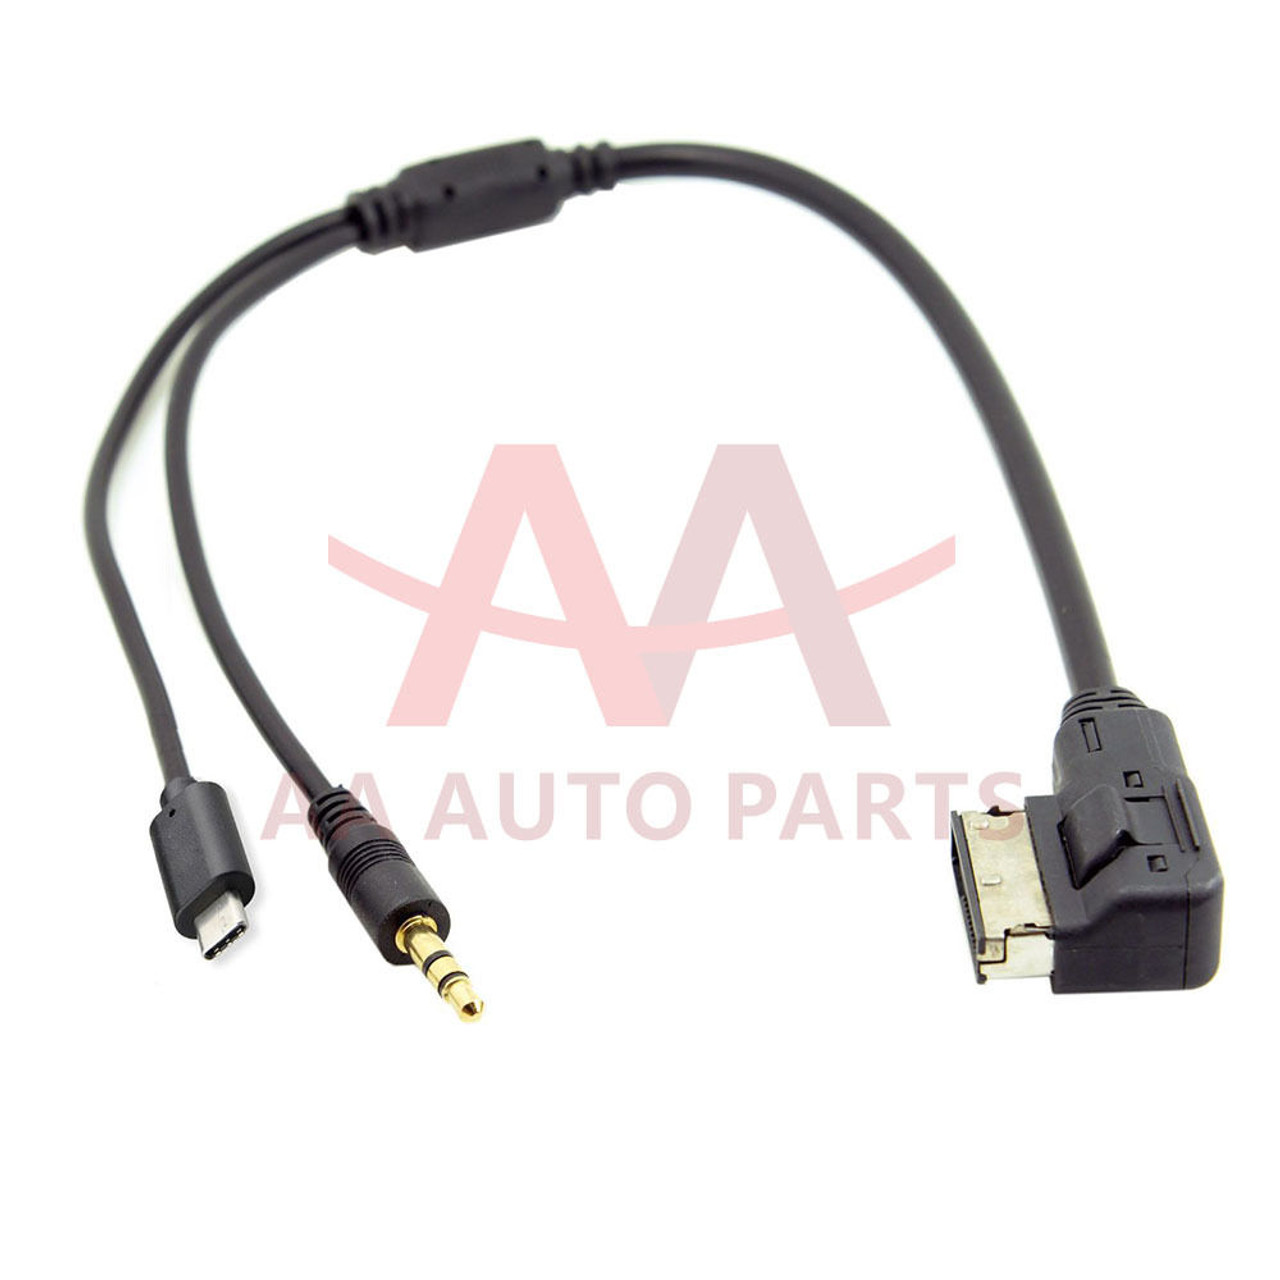 cc9cb07ec27 Audi Volkswagen AMI MMI MDI MEDIA-IN Interface to Type C USB Aux Adapter  Cable